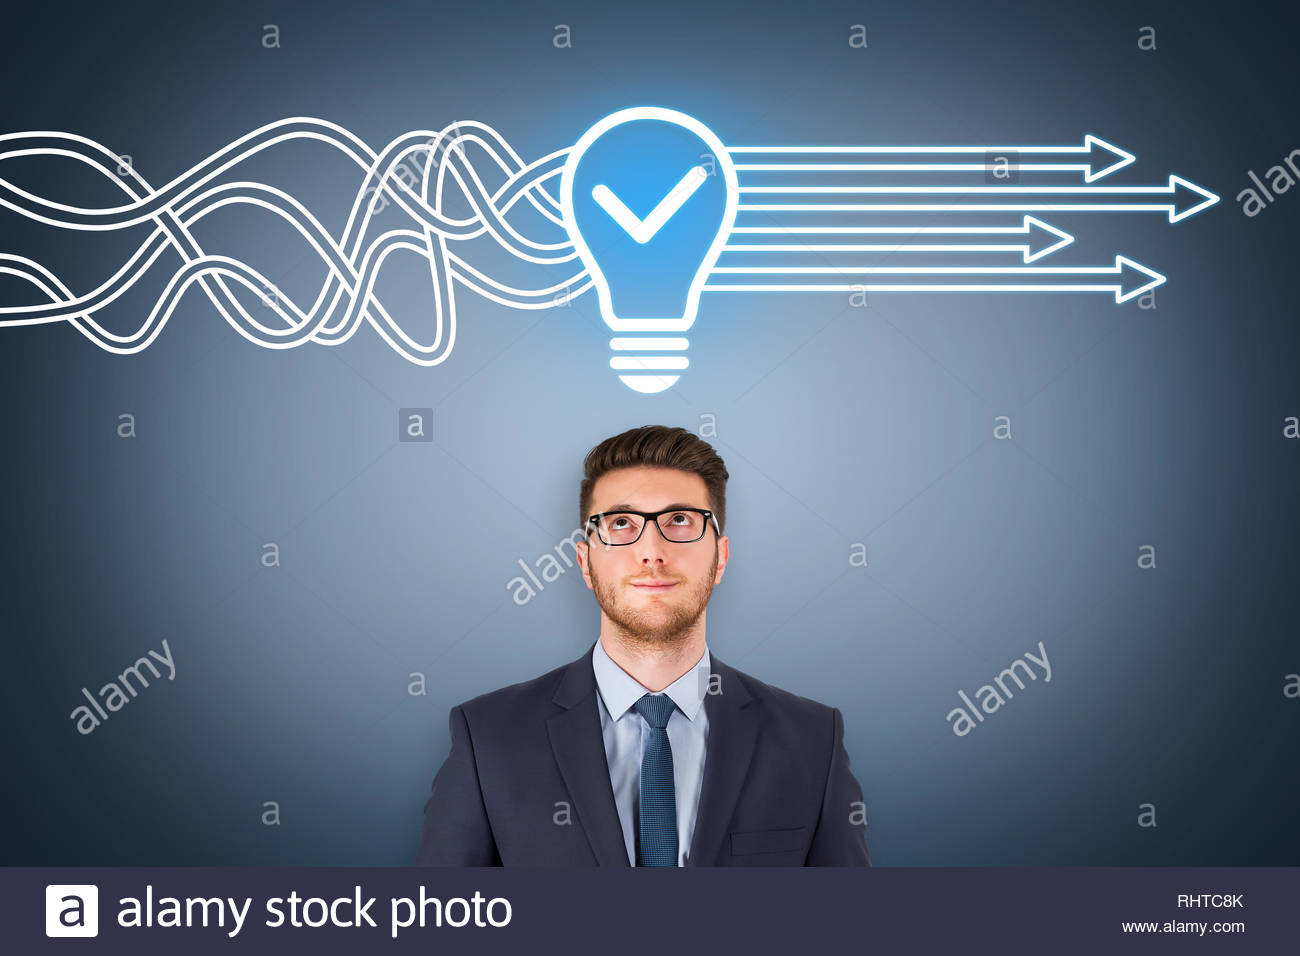 Idea solution concepts on visual screen Stock Photo